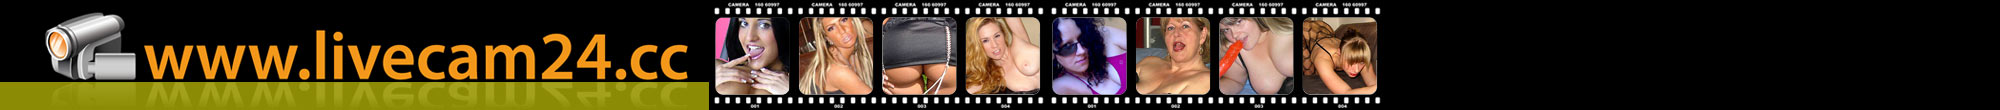 DevoteVenus, 42 Jahre, BH: 85 C - strip webcam -  - Video Web Cams Live Sex Chat von heissen Girls